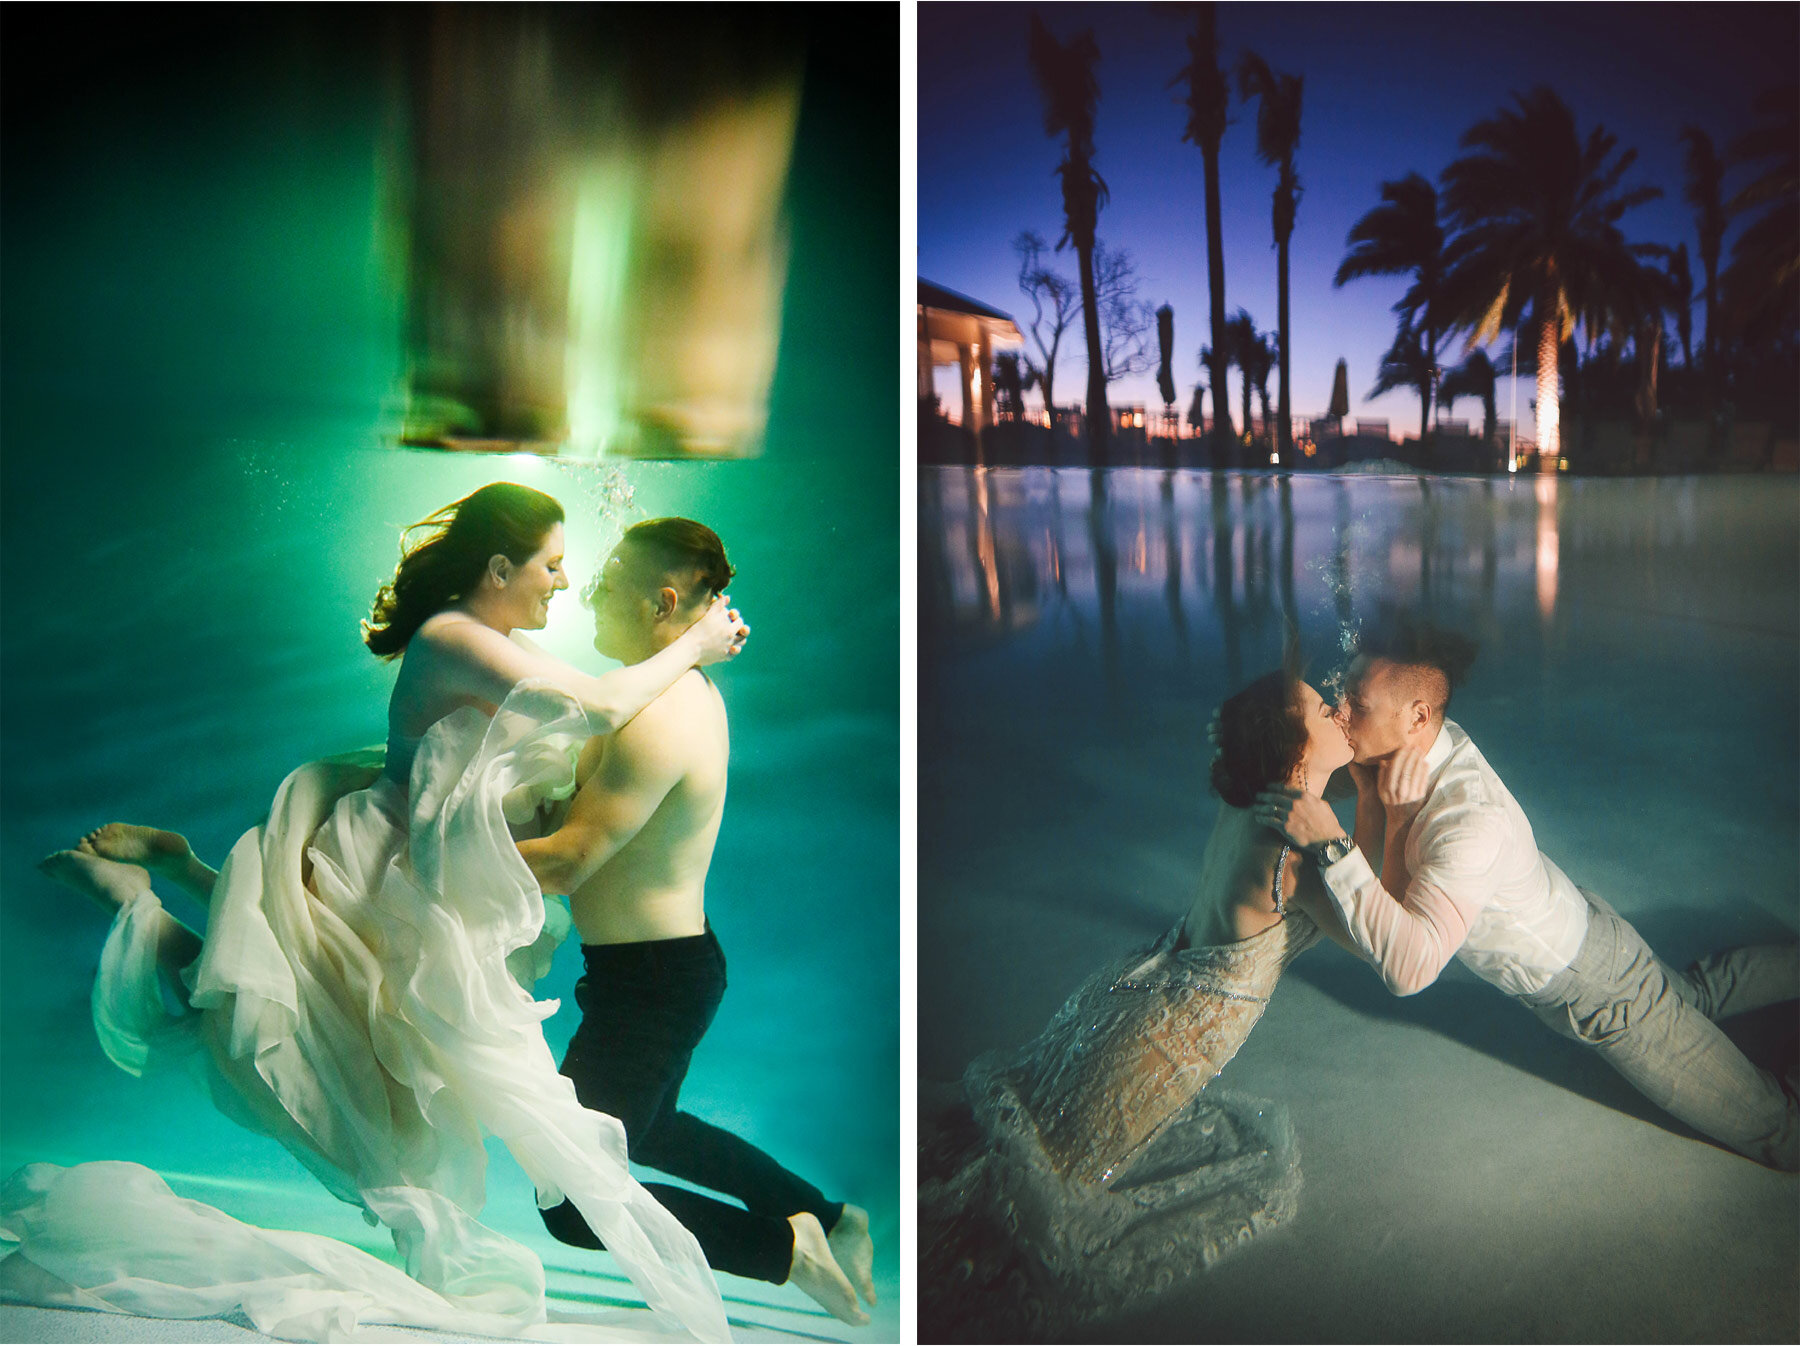 05-Vick-Studios-Maternity-Baby-Bump-Photo-Session-Mother-Father-Pool-Underwater-Dress-Night-Wedding-Carrie-and-Brian.jpg